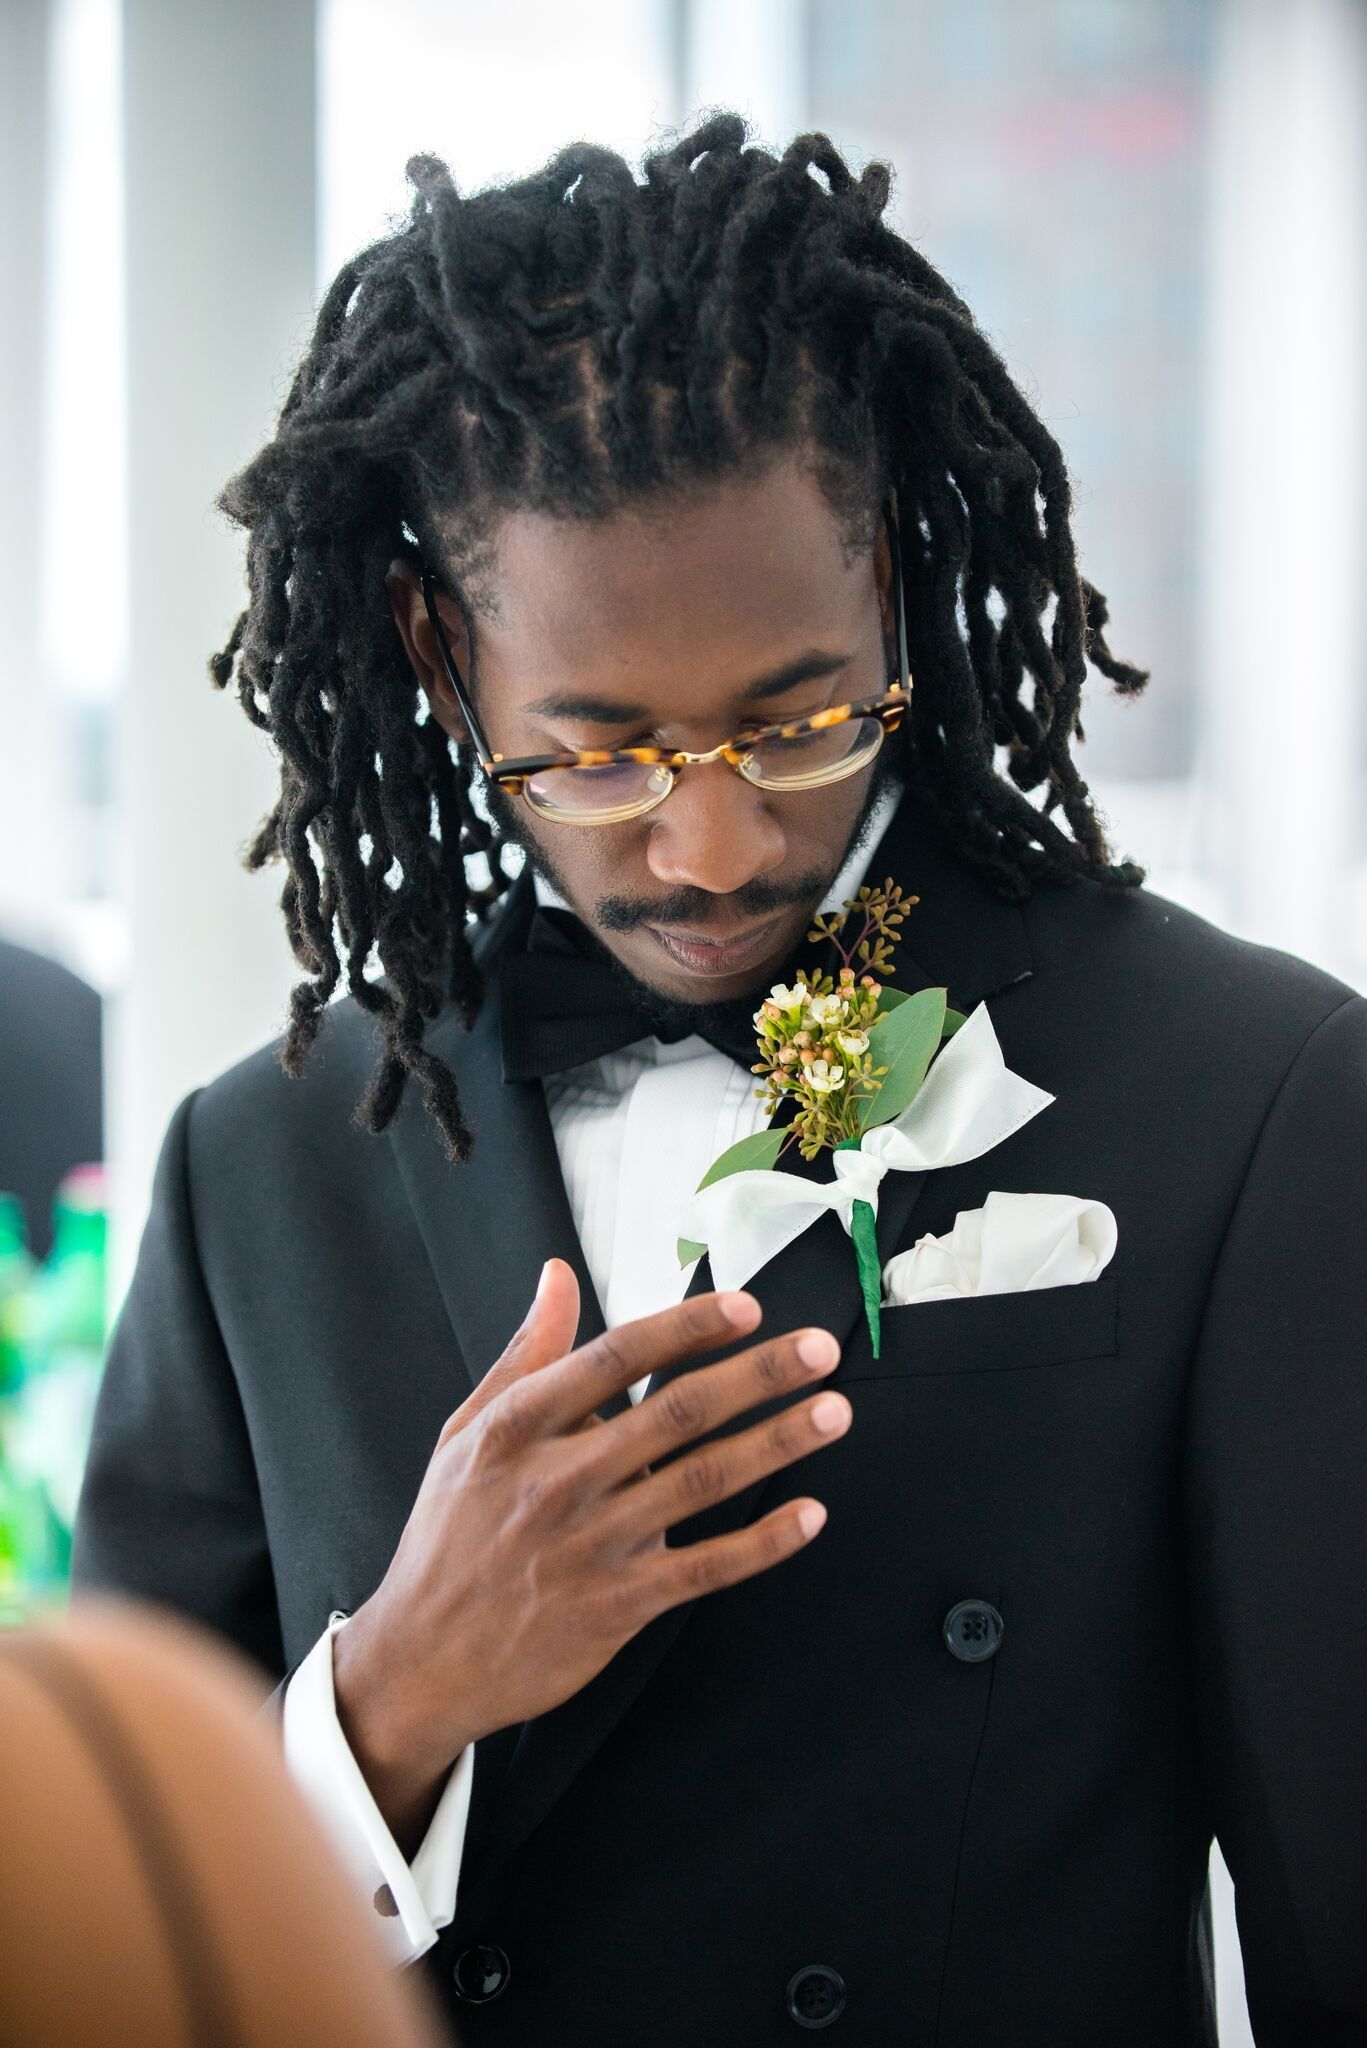 Olive leaf boutonniere by Heights Florist